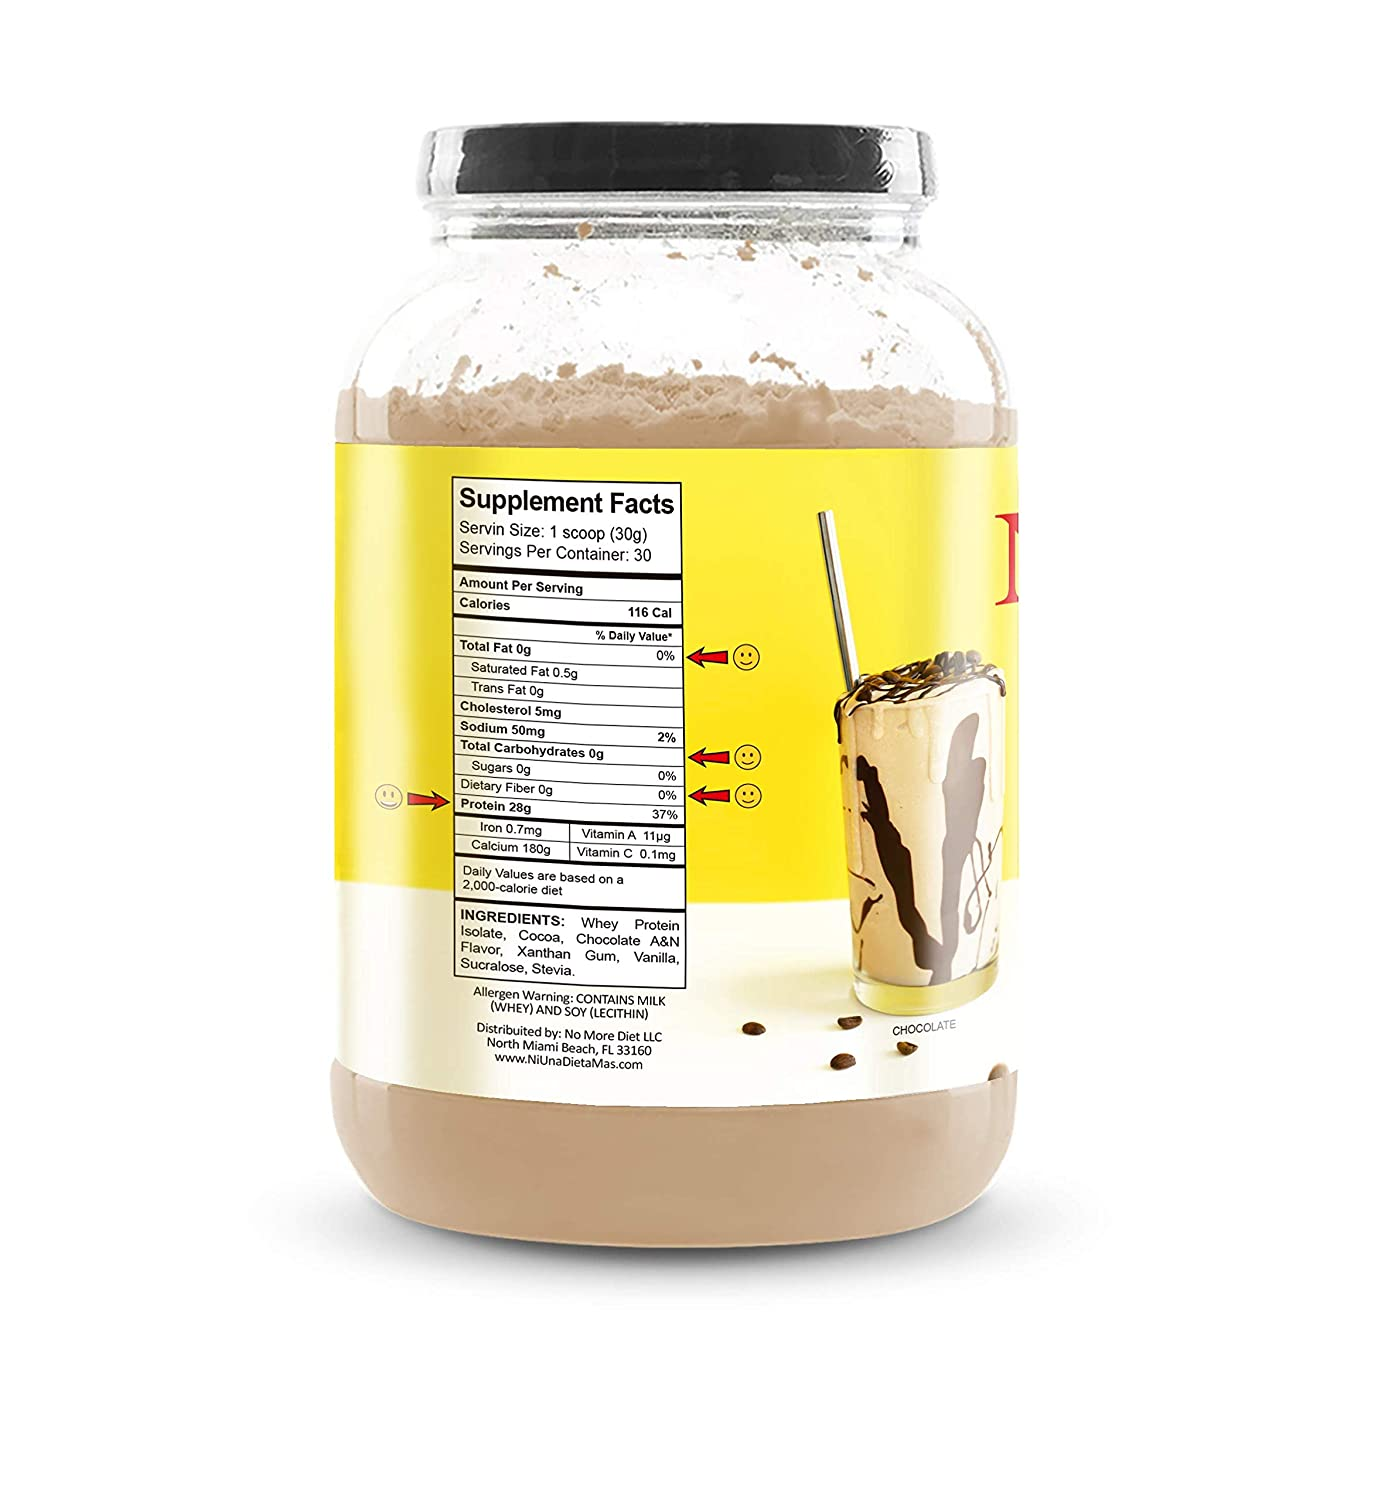 Amazon.com: NI UNA DIETA MAS - Whey Protein Isolate (Delicious Chocolate) No sugar, No Lactose, Easy to Mix: Health & Personal Care